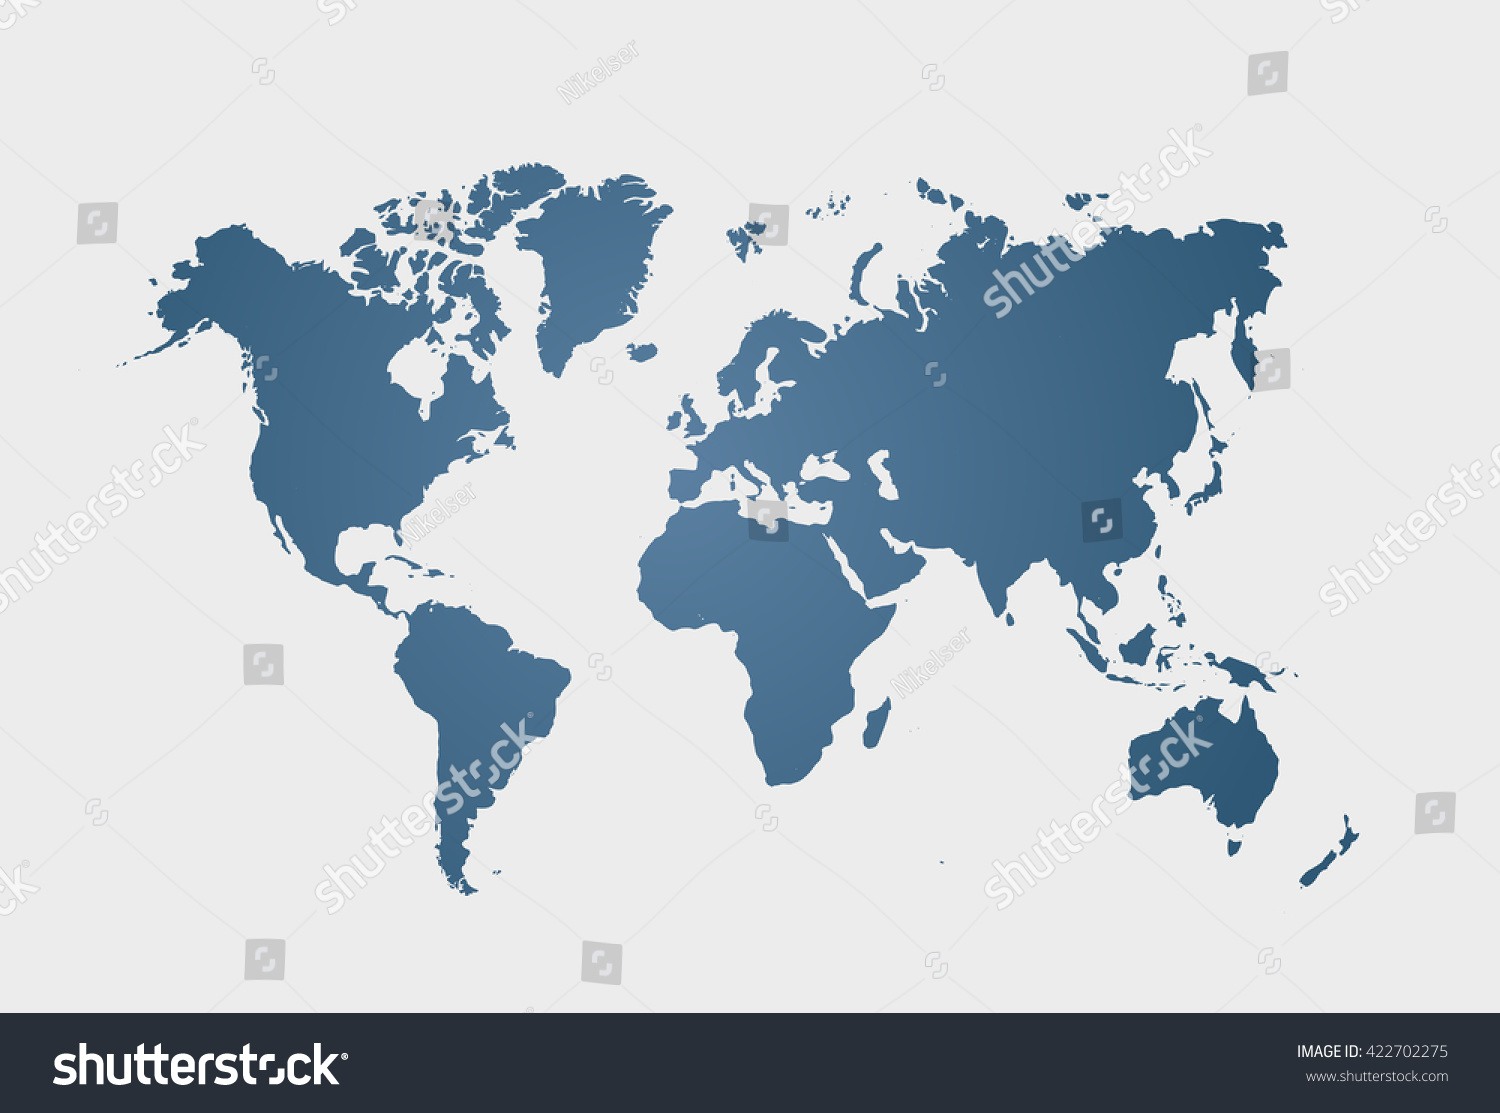 Blue similar world map blank world stock vector 422702275 shutterstock blue similar world map blank world clean flat map vector illustration eps 10 gumiabroncs Image collections